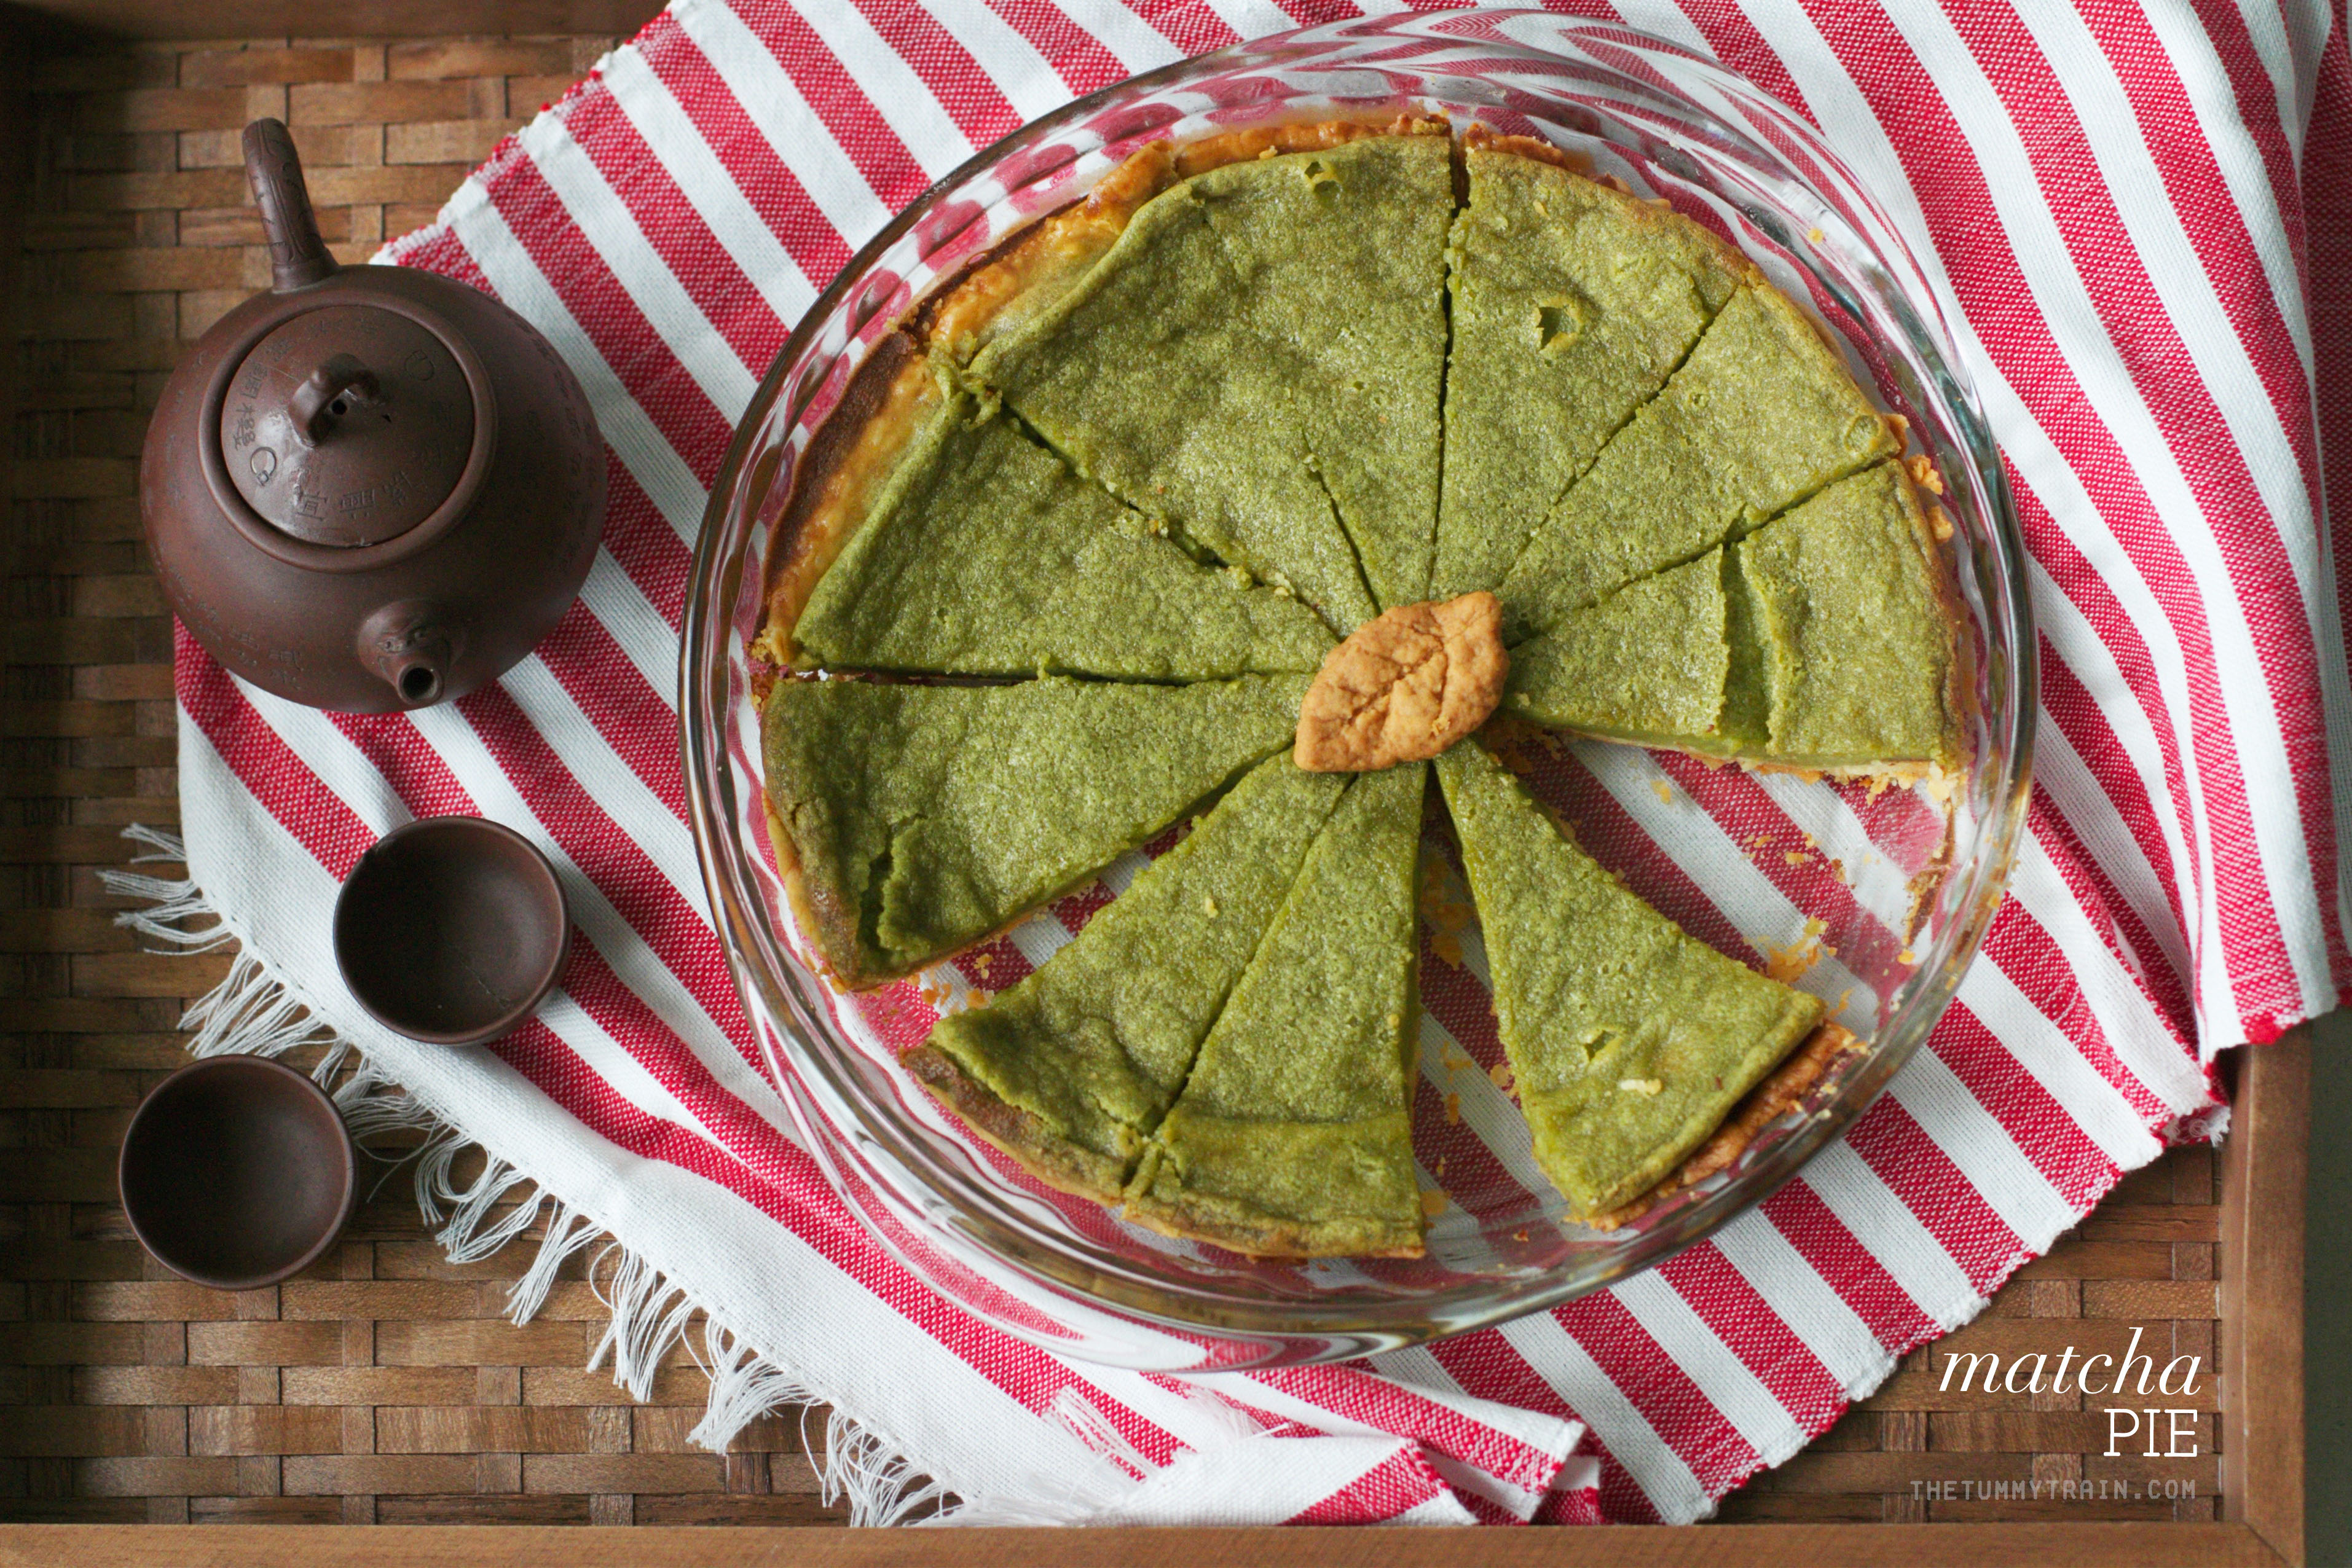 Matcha Pie 1 - Second chance Matcha Pie using Matcha King's Ceremonial Matcha